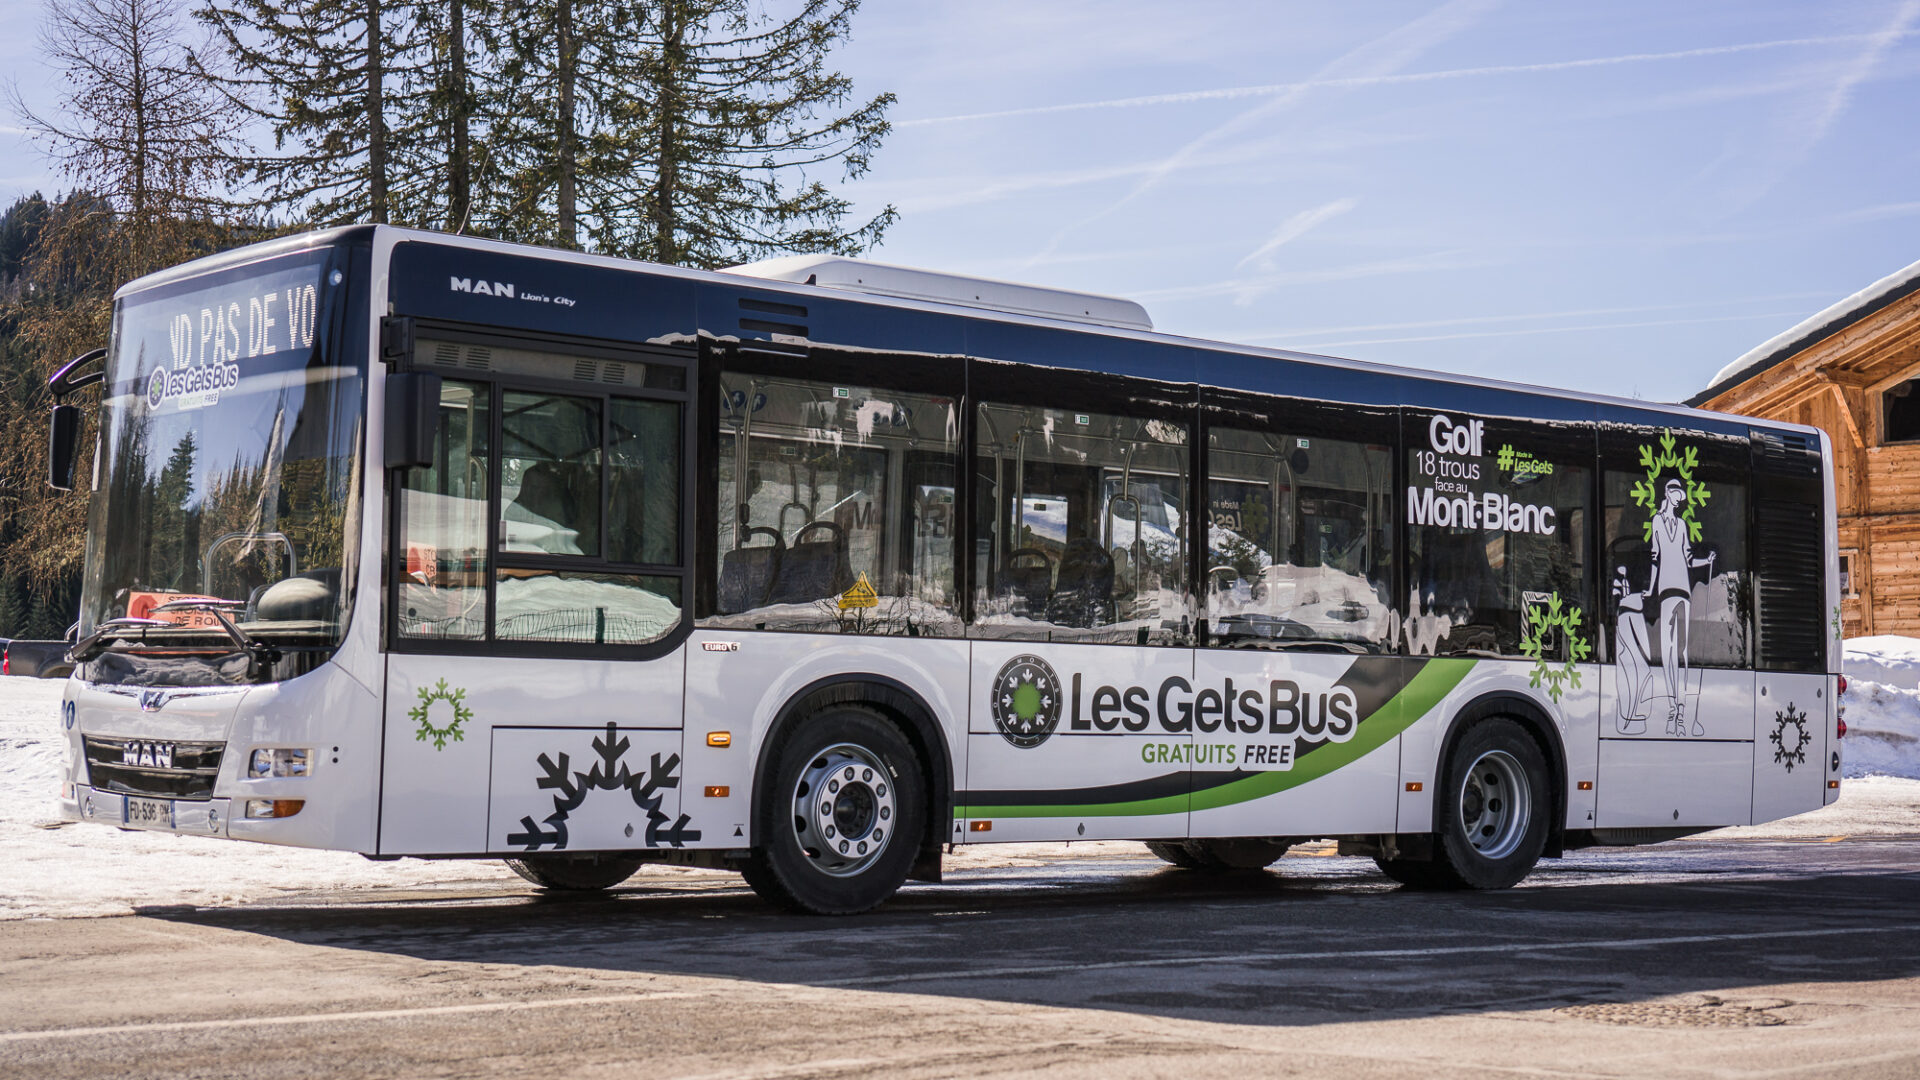 Free shuttles Les Gets Bus Winter